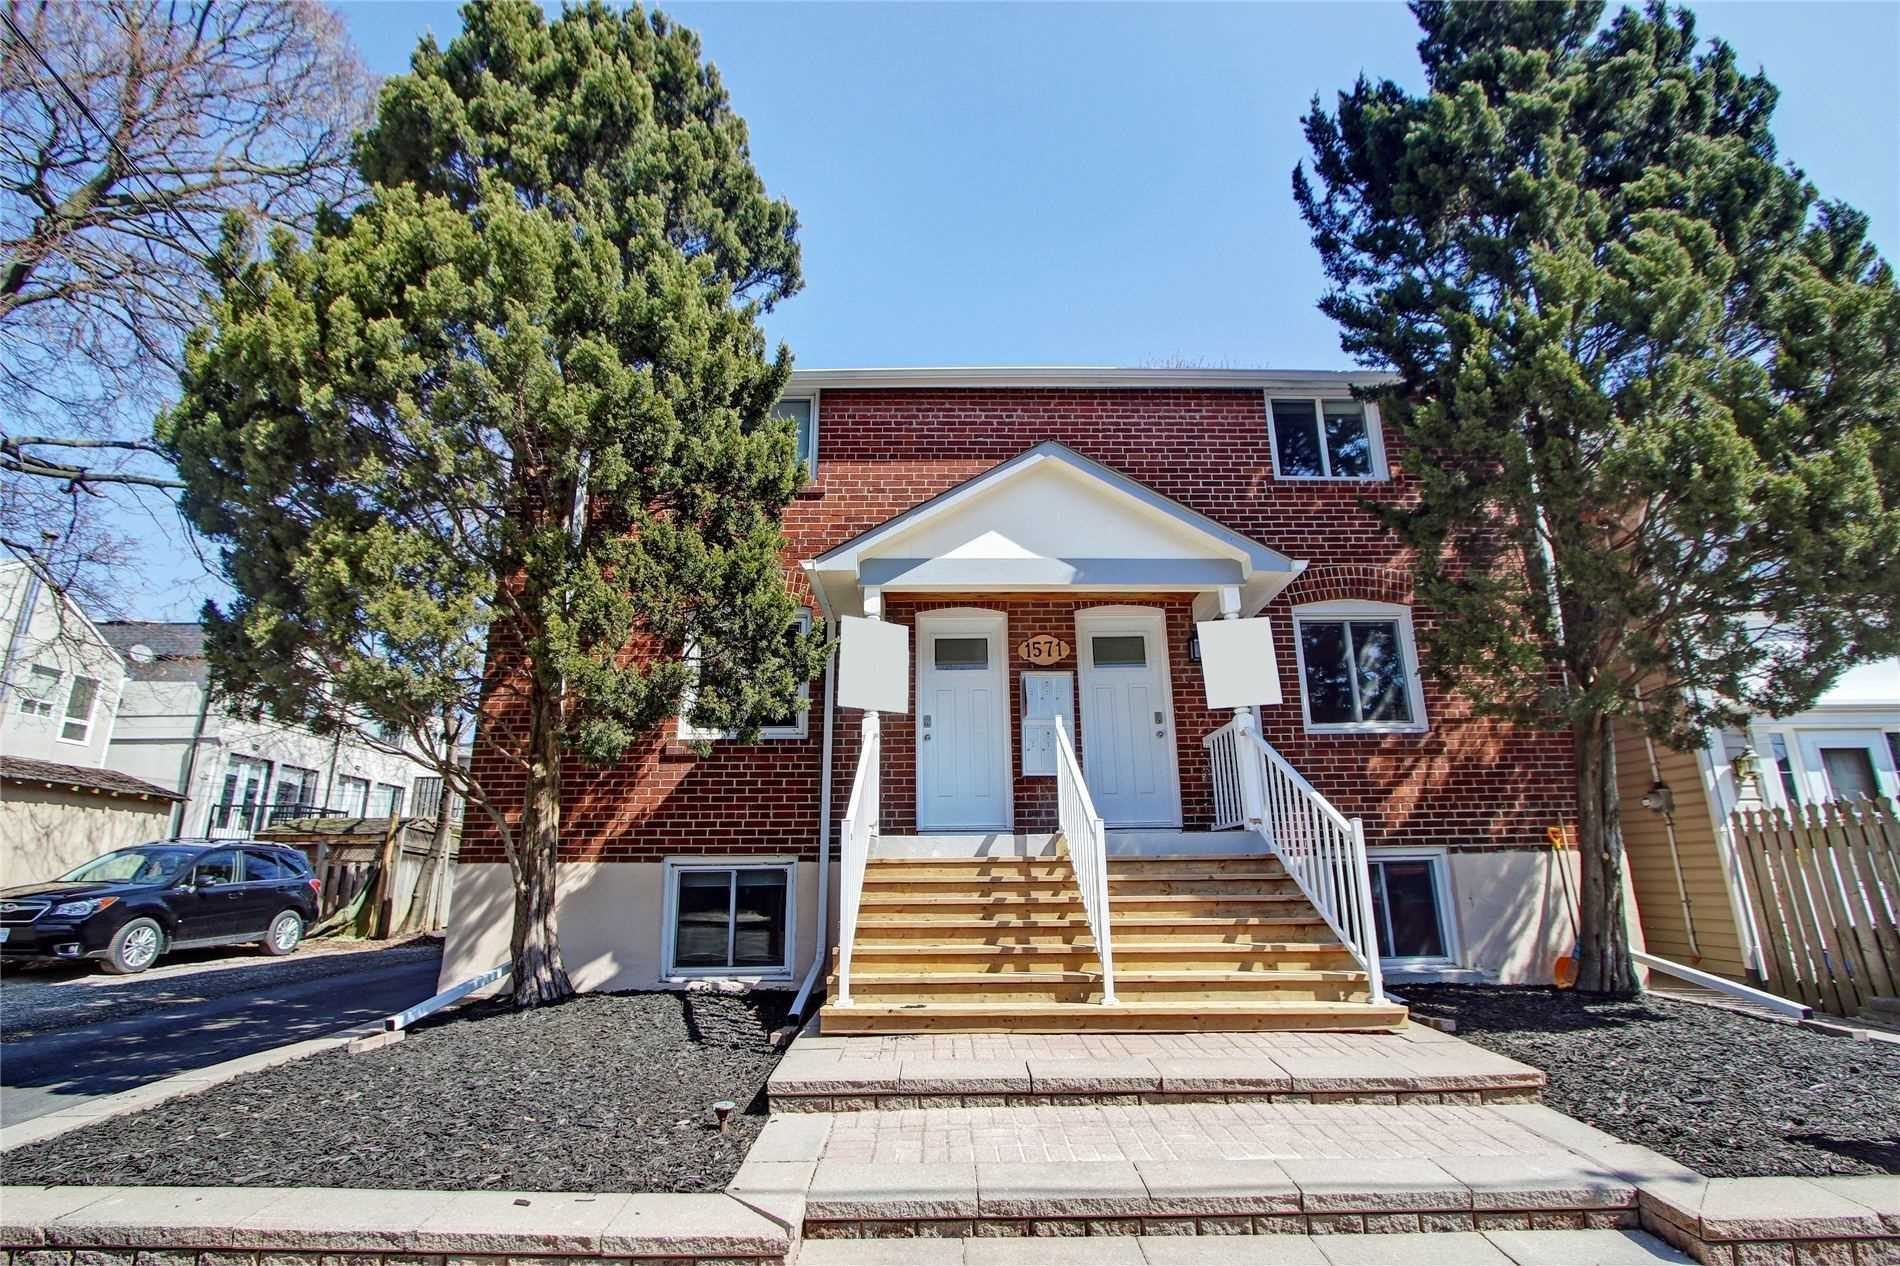 Beautiful Updated 1 Bedroom Unit In Sought After Lawrence Park. The Unit Has Been Recently Updated And Is Located Close To Transit, Highways, & Amazing Schools! Heat, Hydro, And Water Included! Parking Available At An Additional Fee.